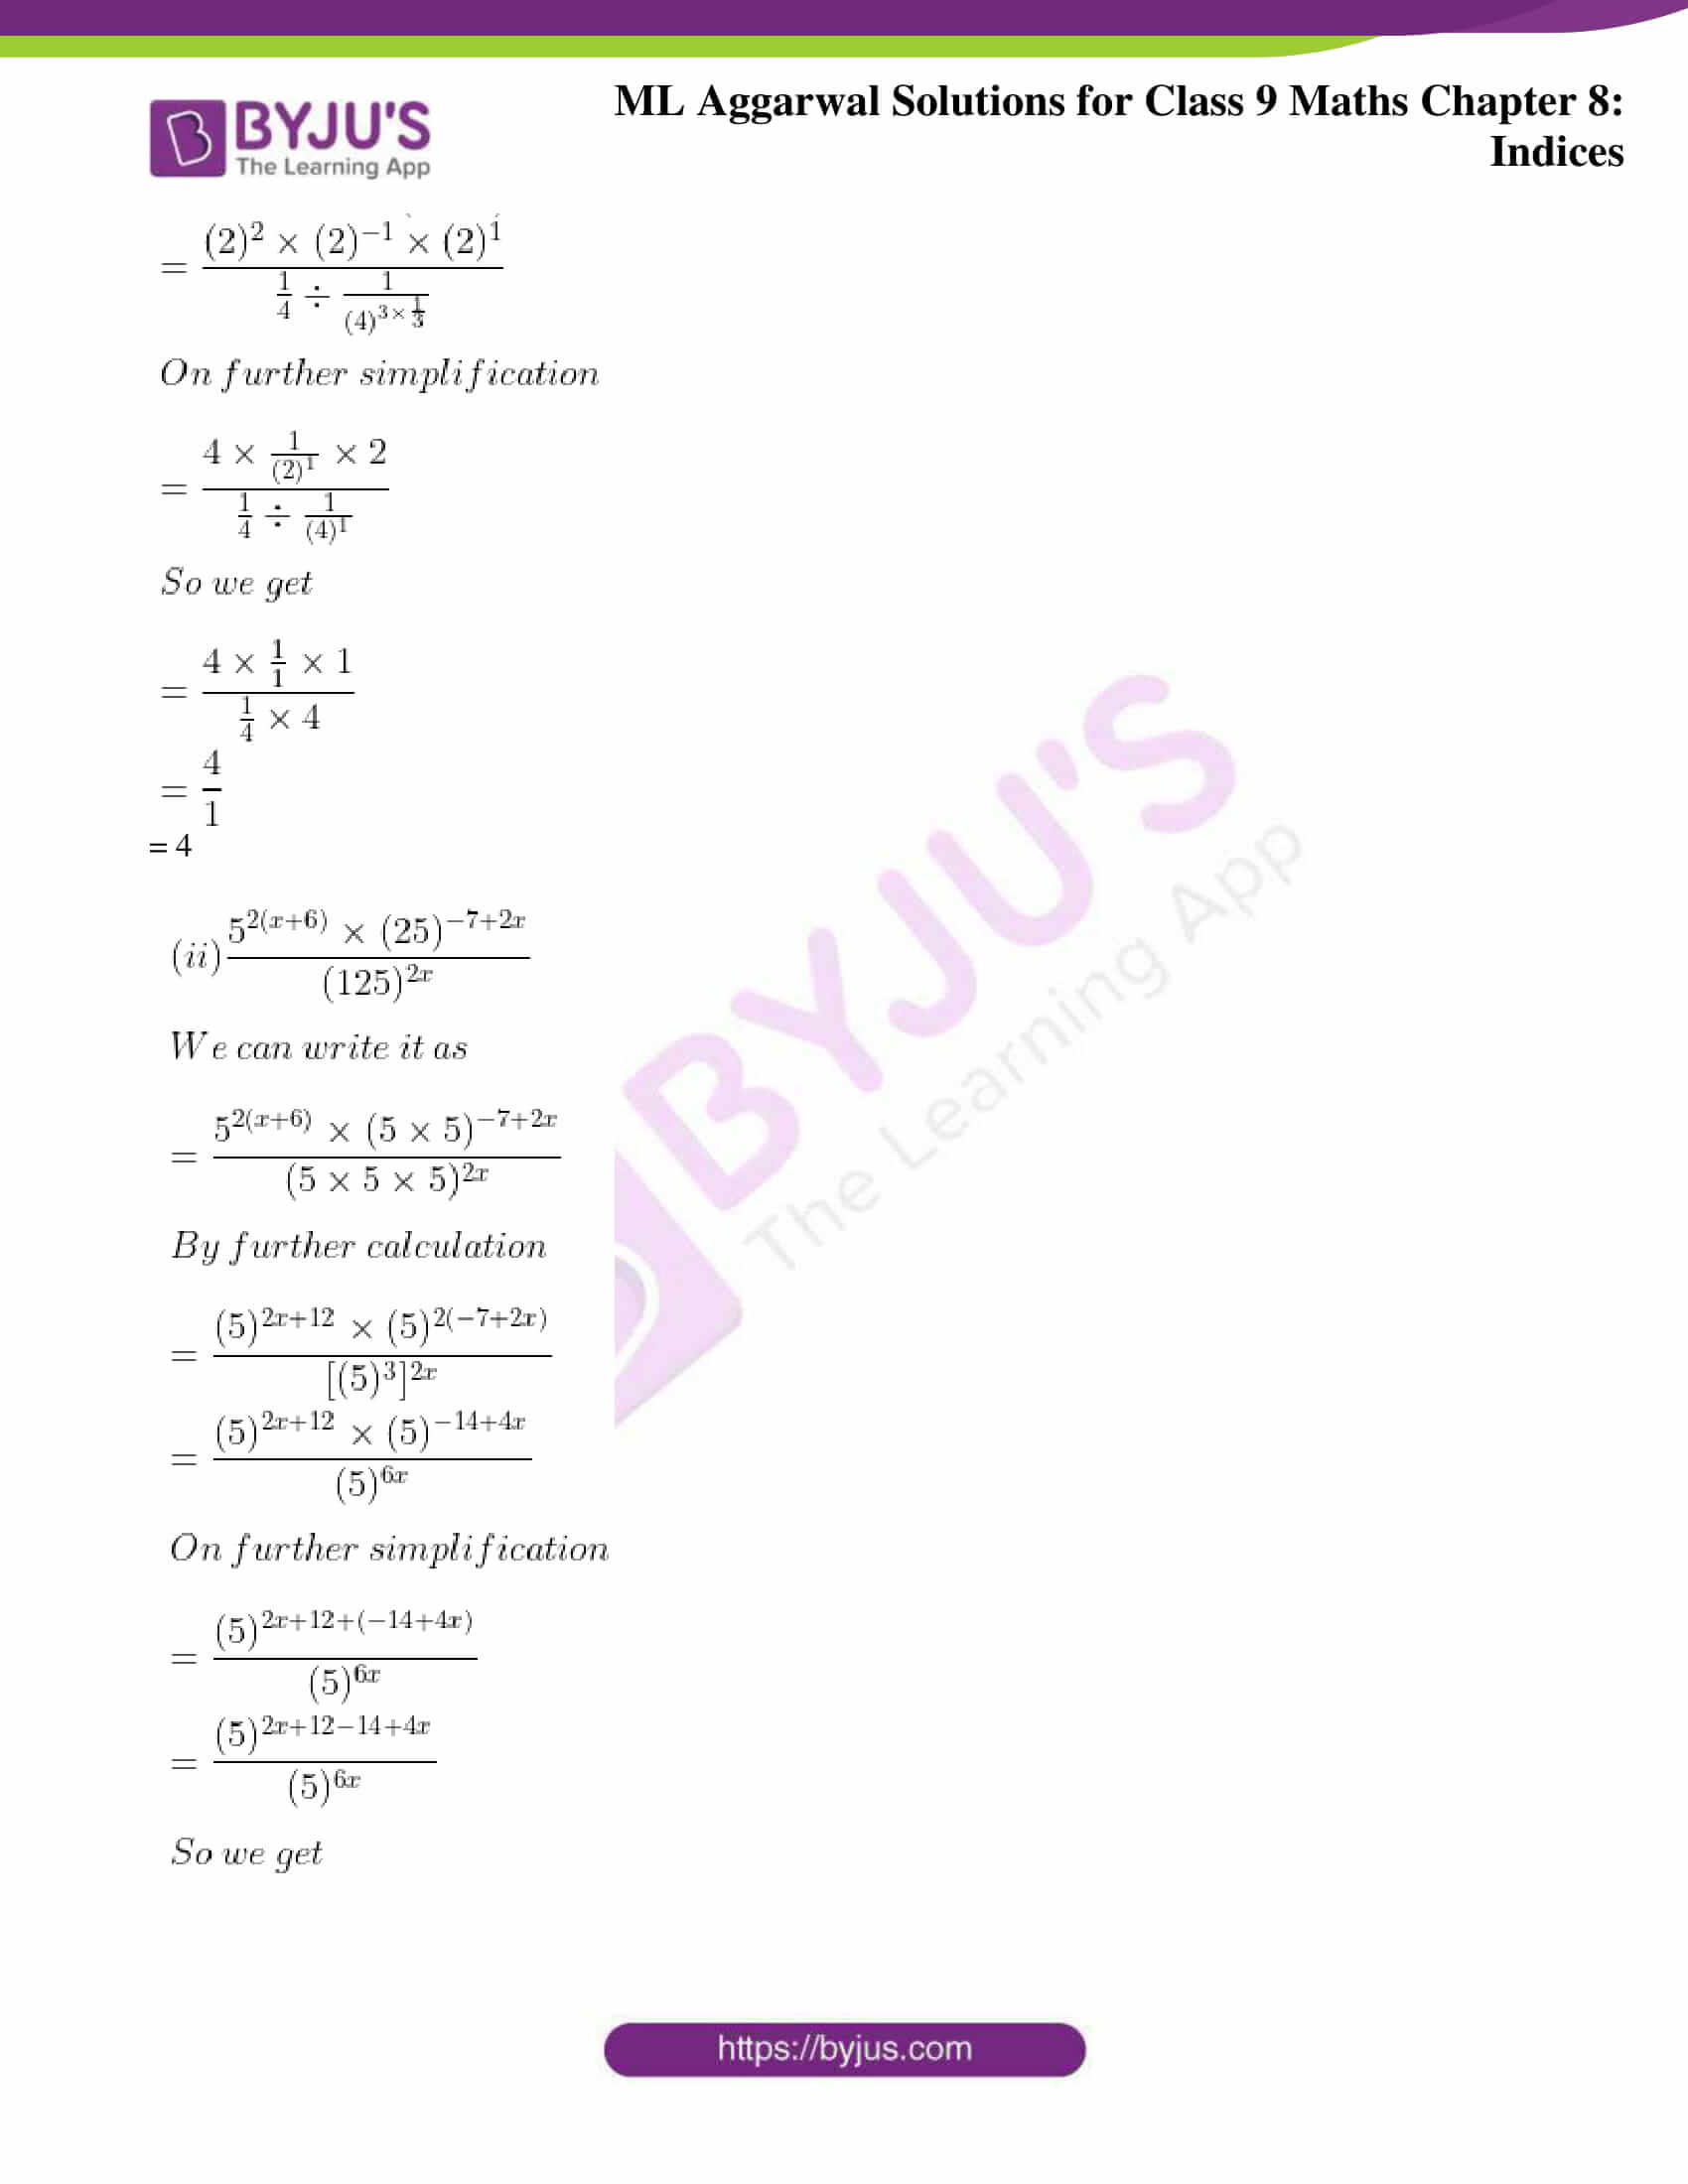 ml aggarwal solutions for class 9 maths chapter 8 16